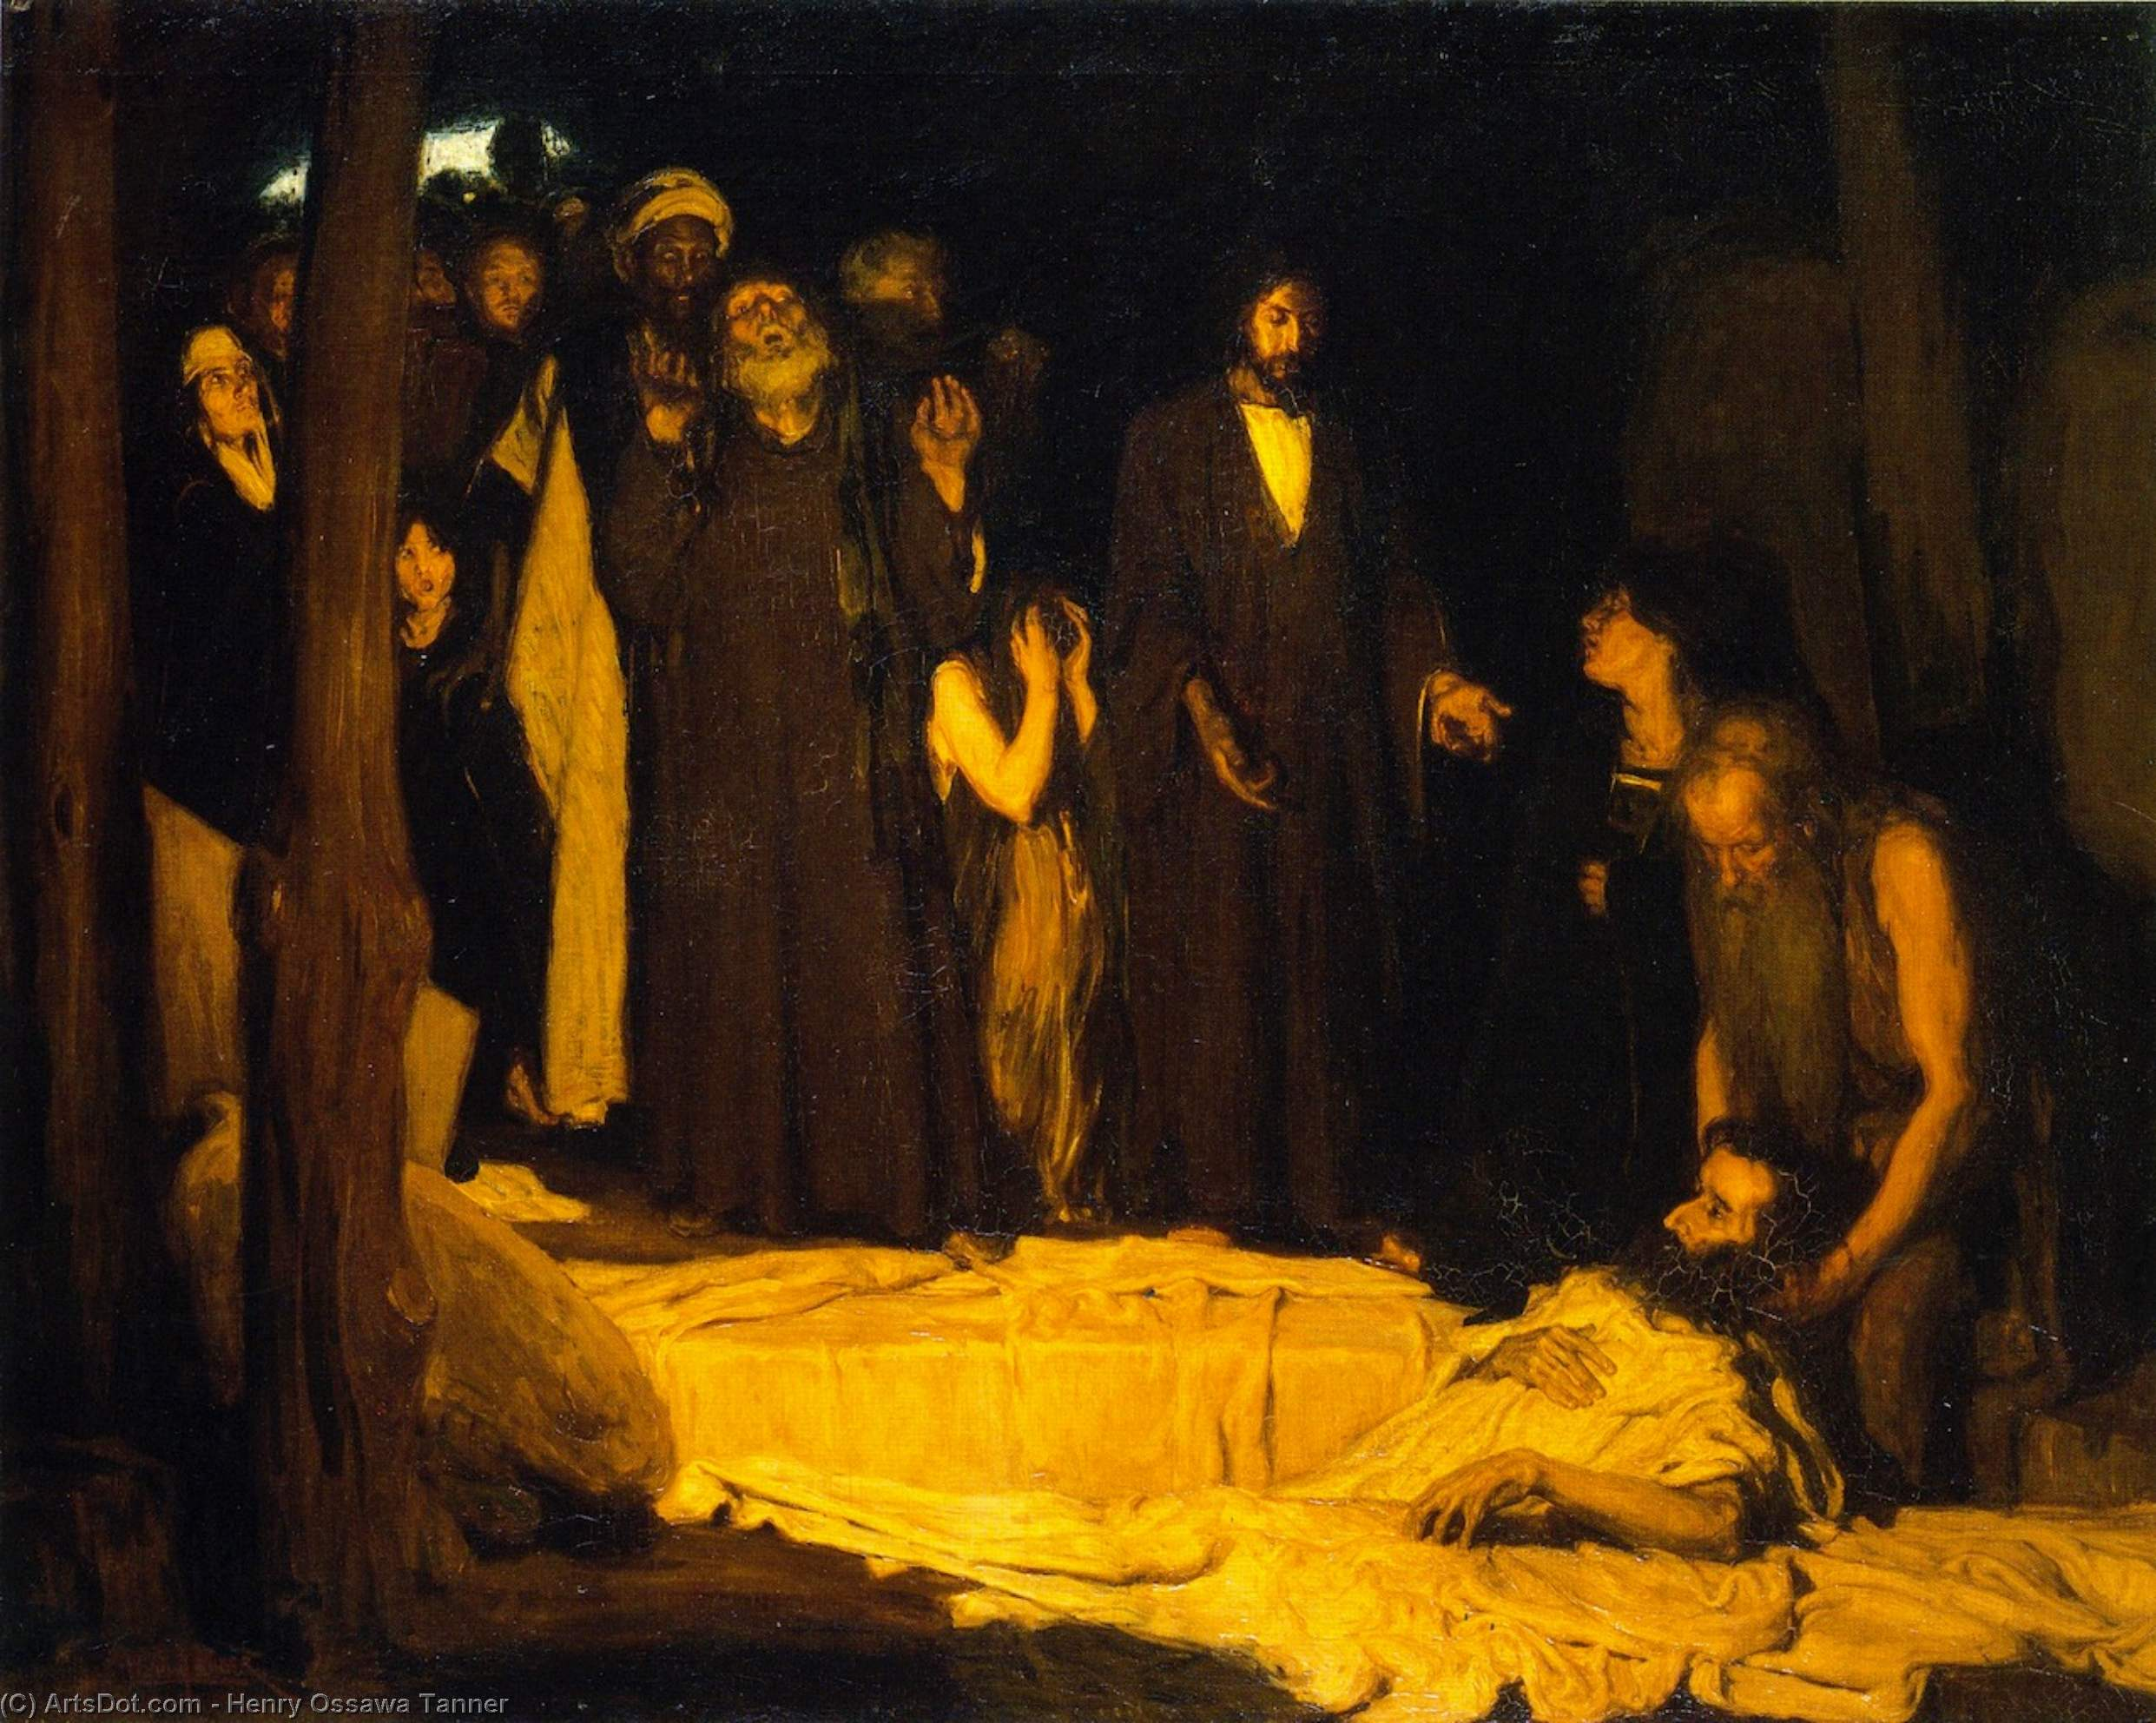 The Resurrection of Lazarus, 1896 by Henry Ossawa Tanner (1859-1937, United States) | Reproductions Henry Ossawa Tanner | ArtsDot.com